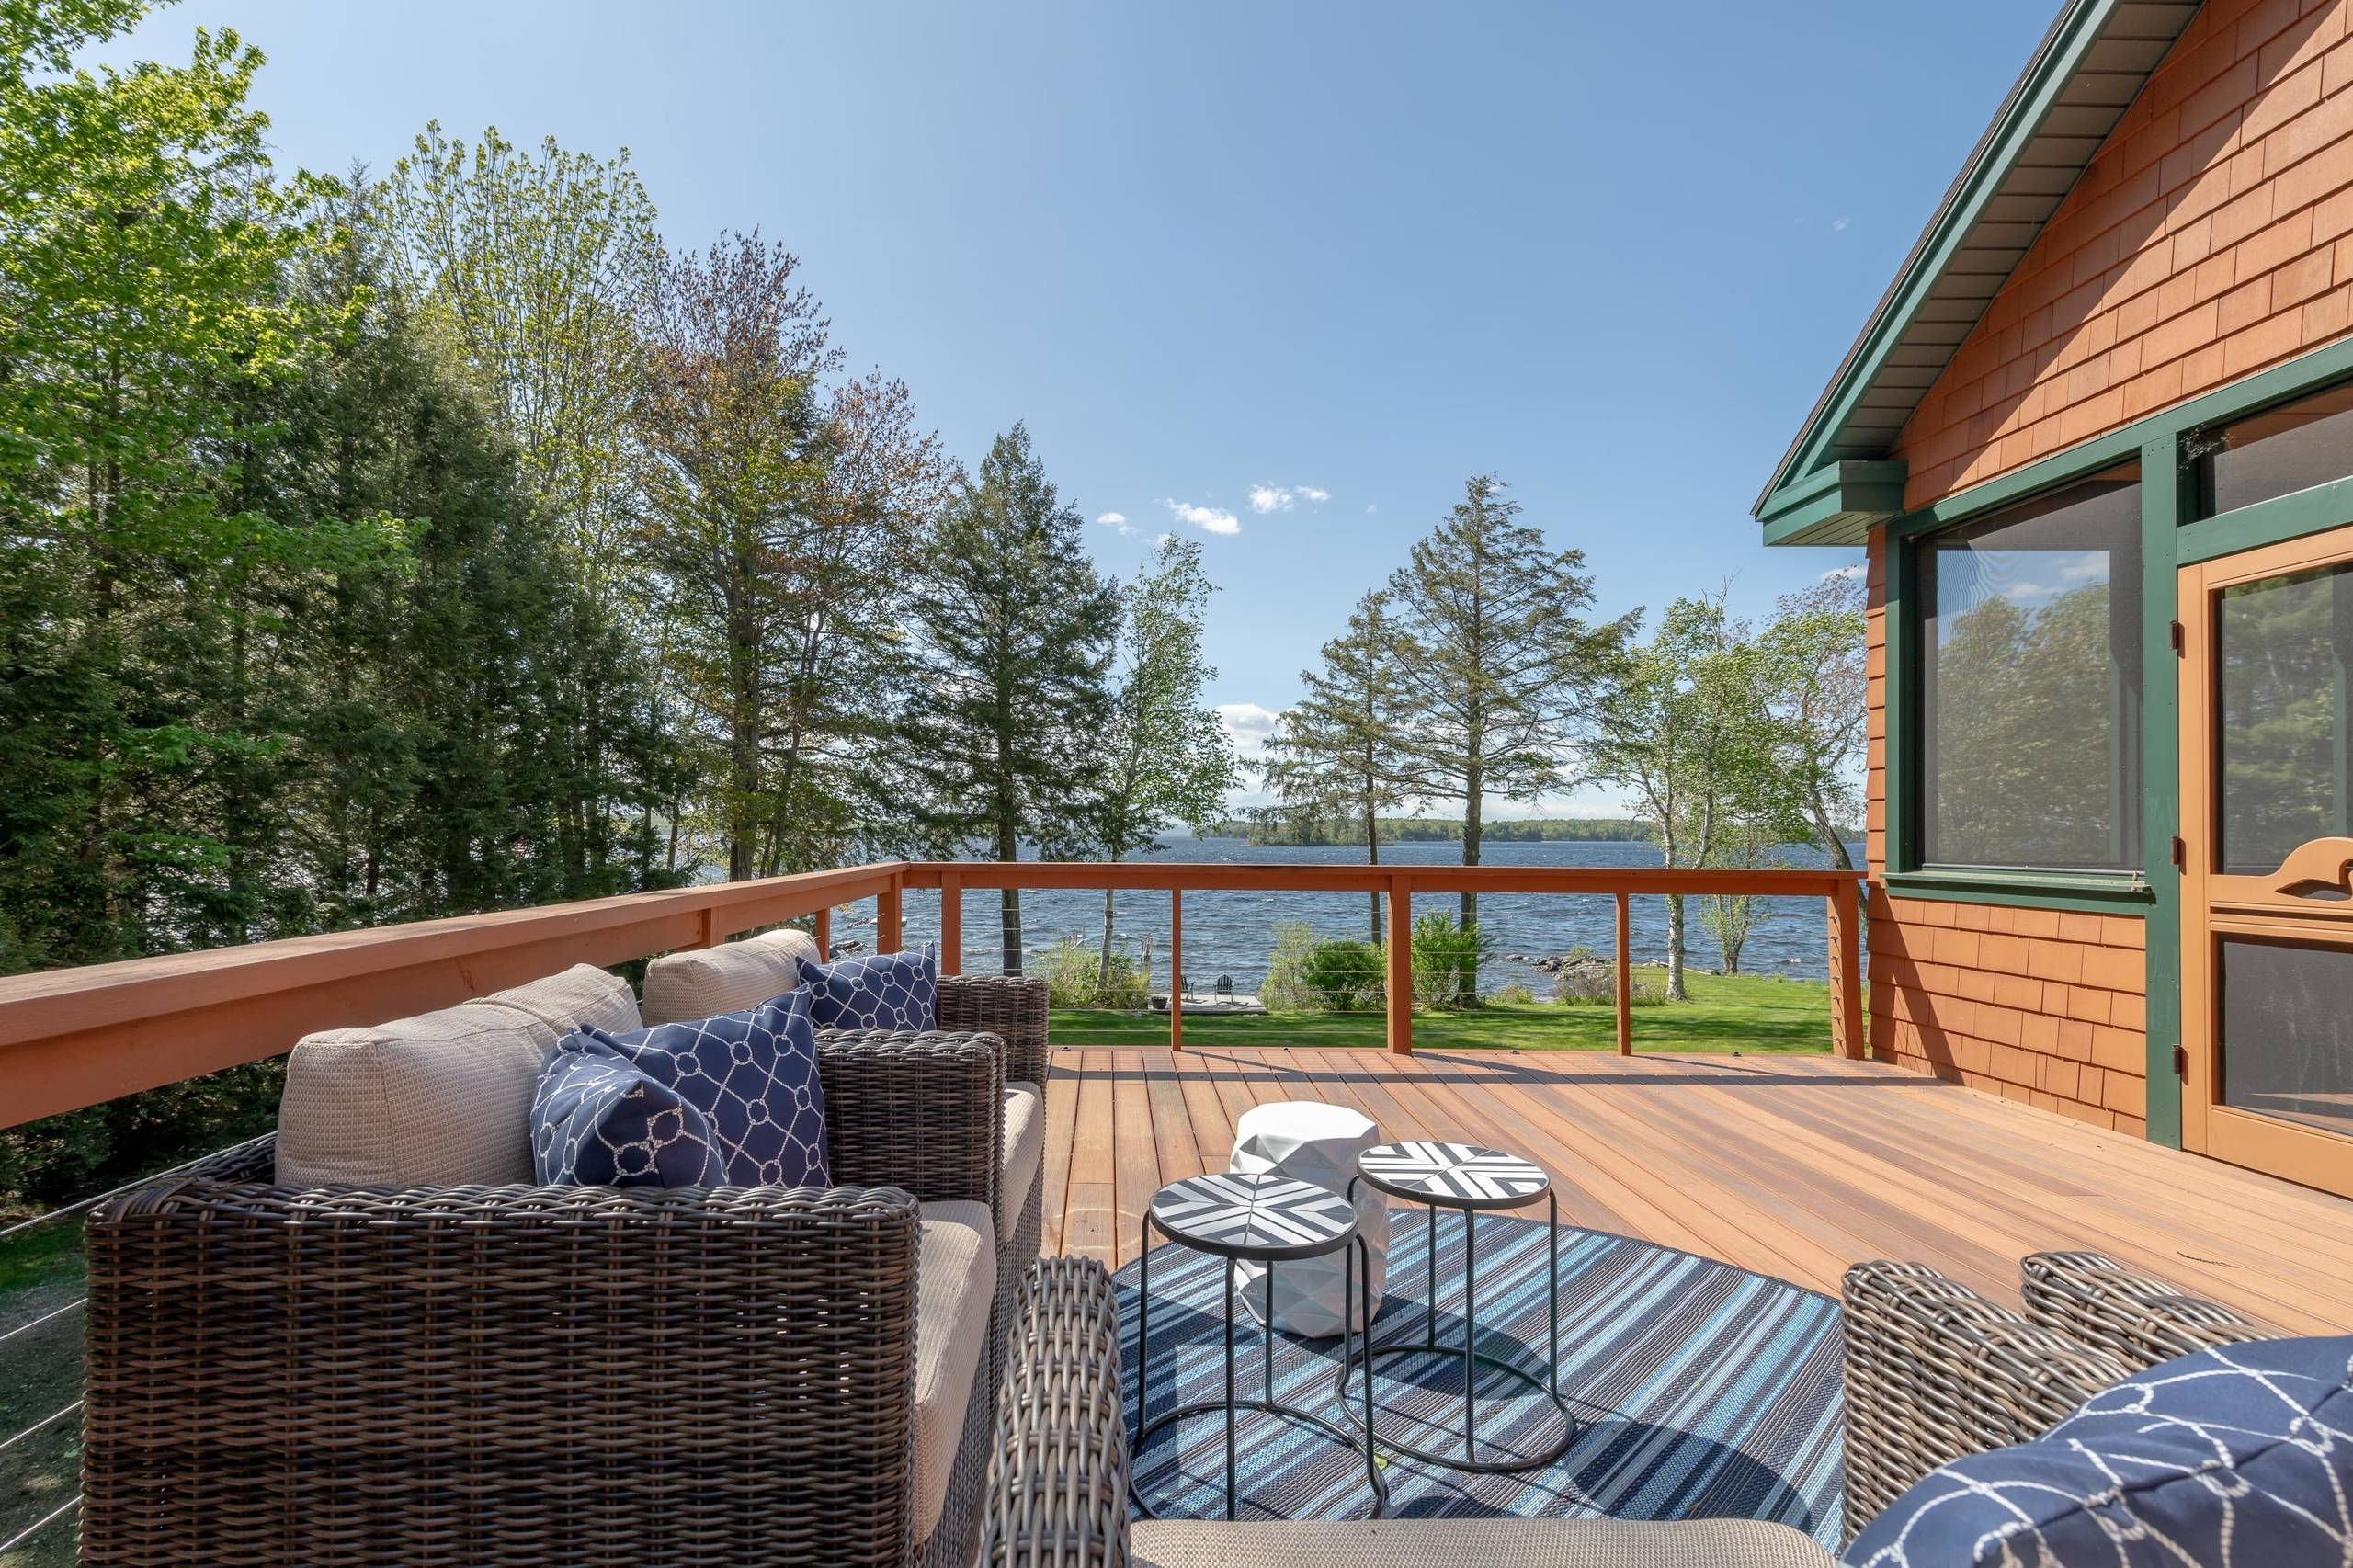 Lakehouse in Maine